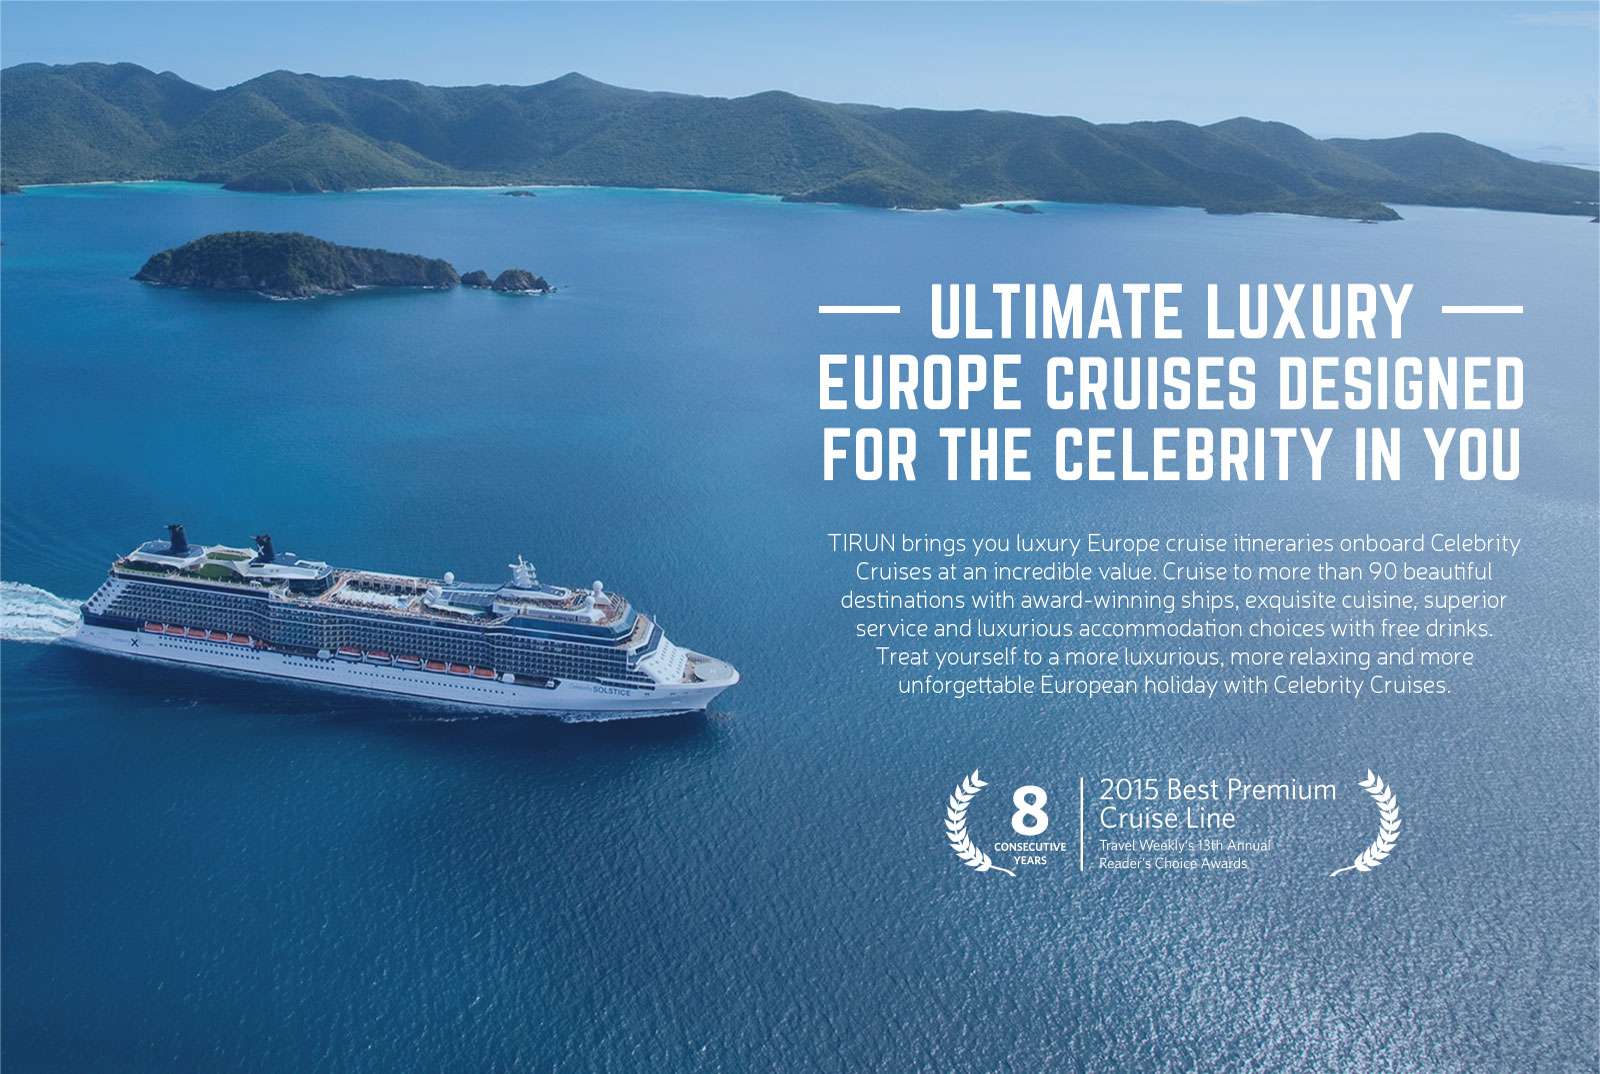 Cruise Vacation In Europe On Celebrity Cruises View Best - Celebrity eclipse cruise ship itinerary